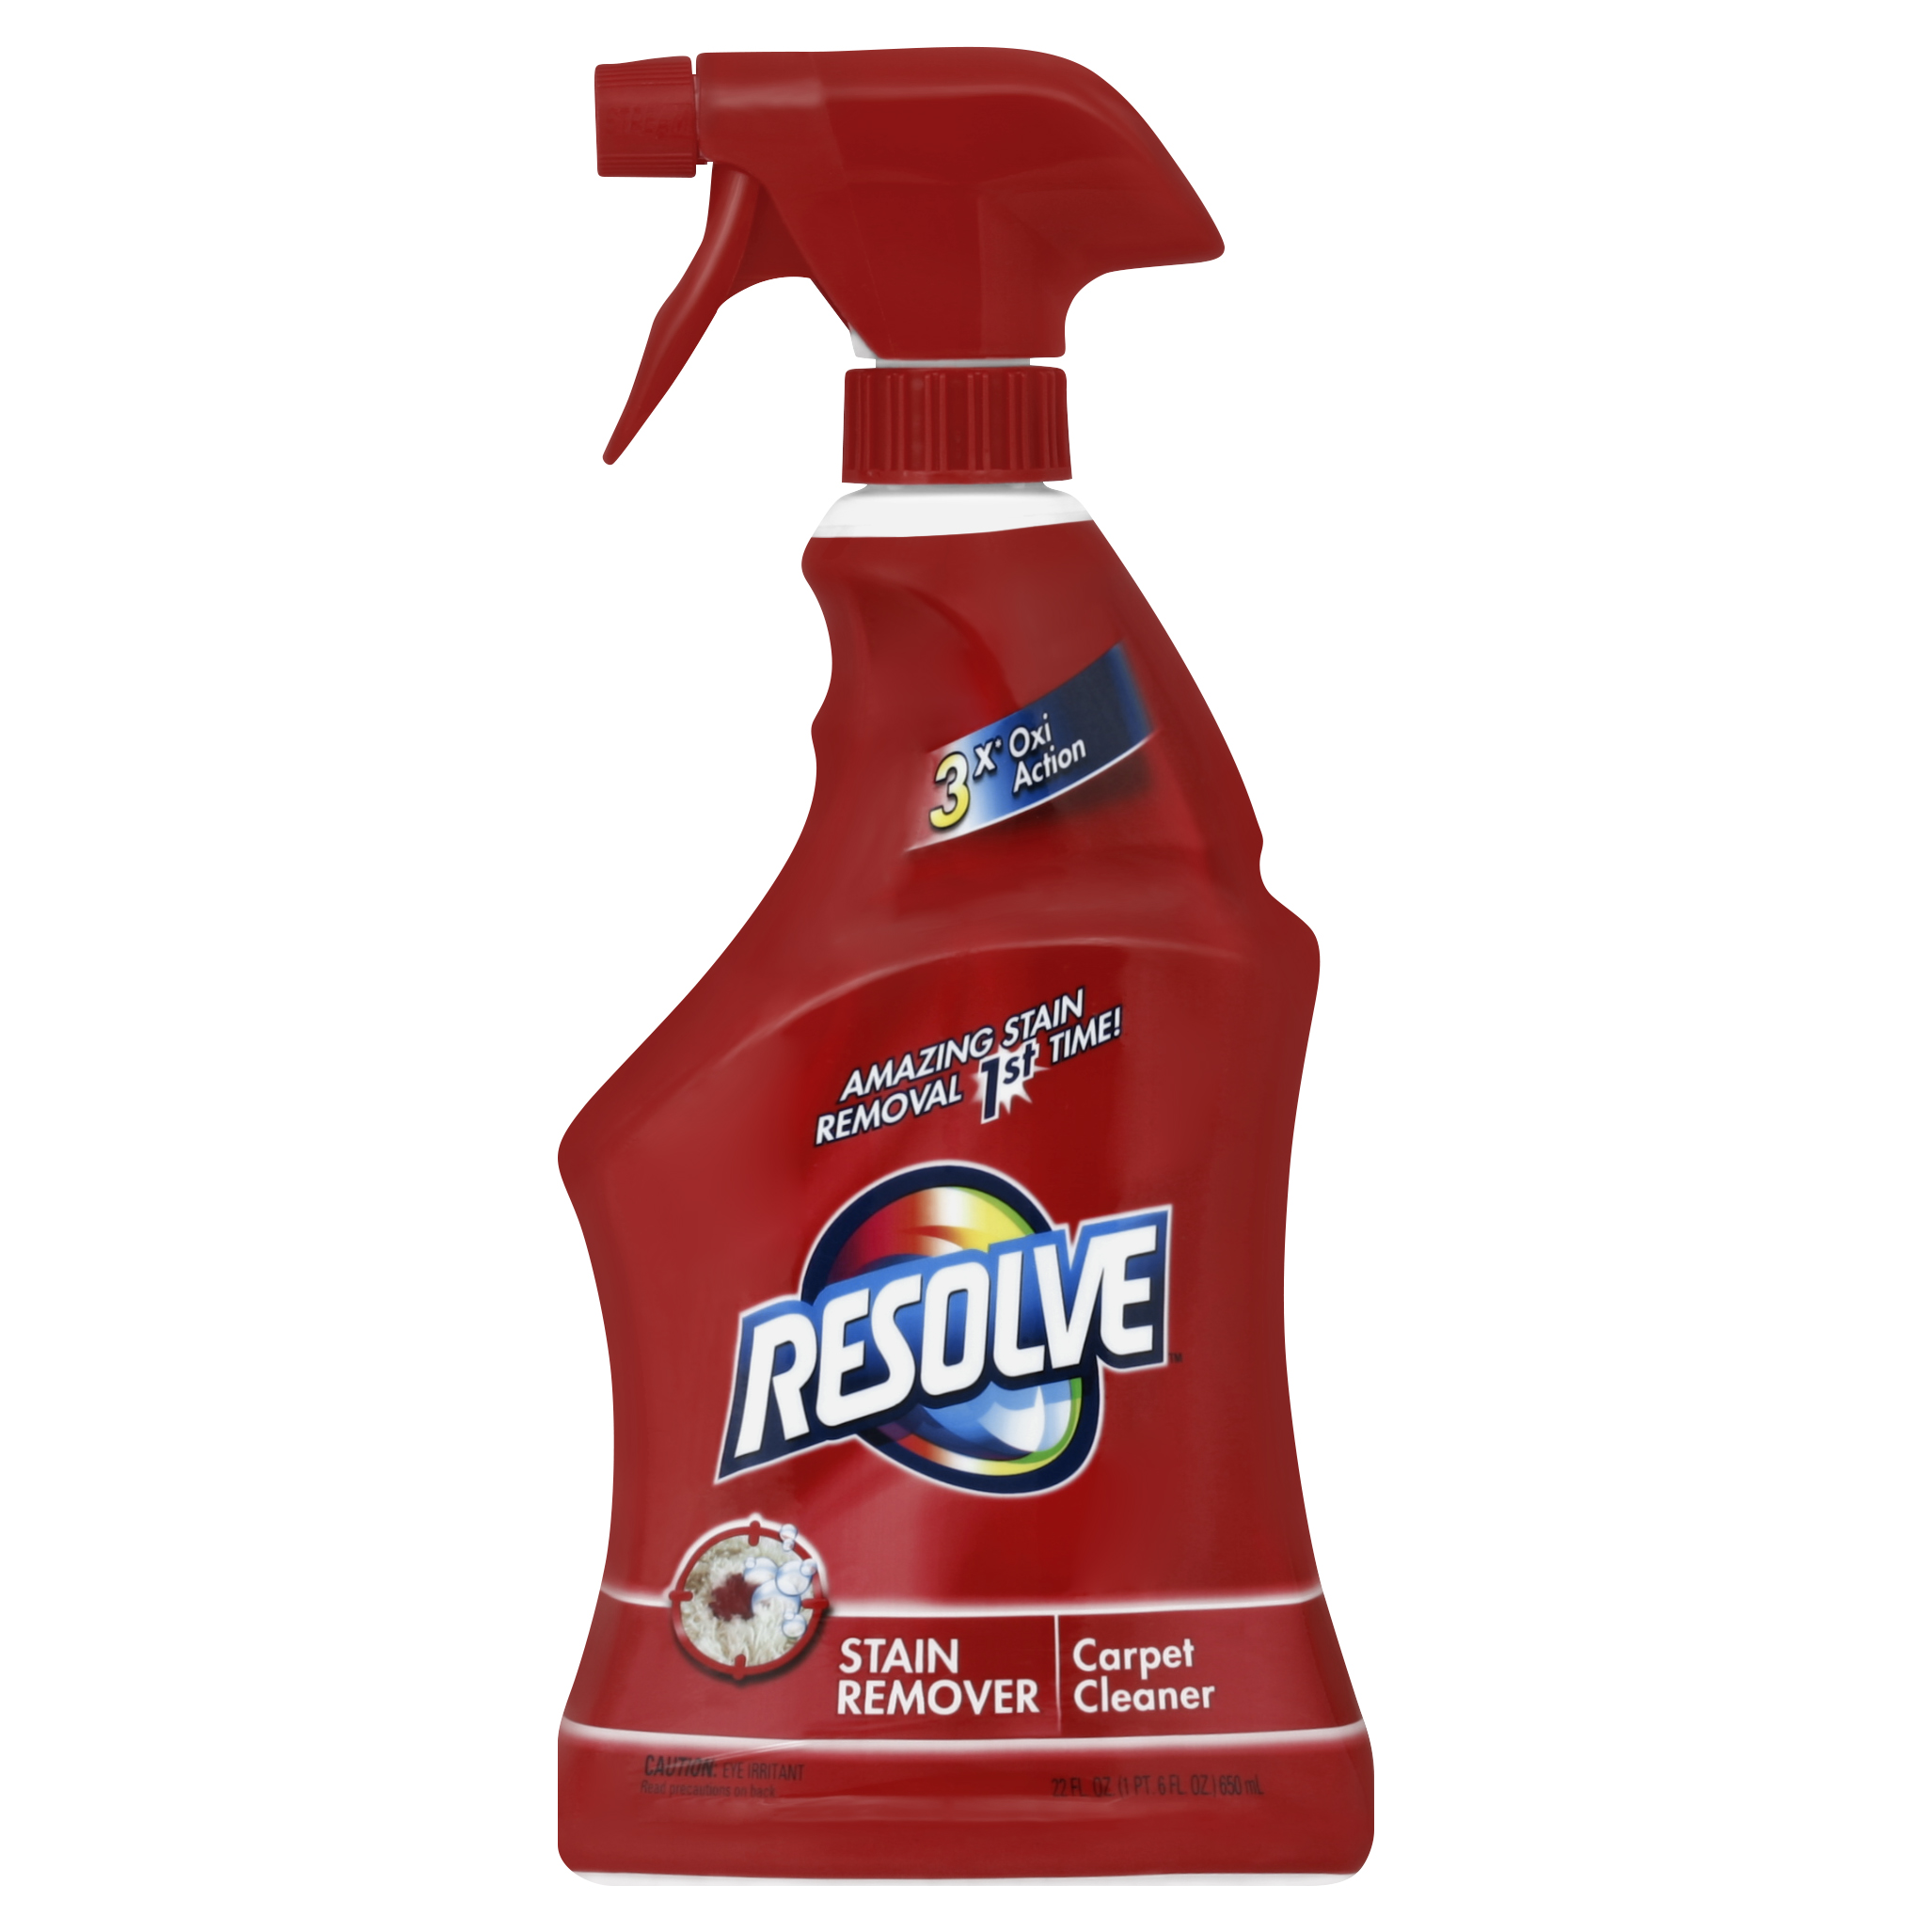 Resolve Carpet Stain Remover Carpet Cleaner, 22 Ounce